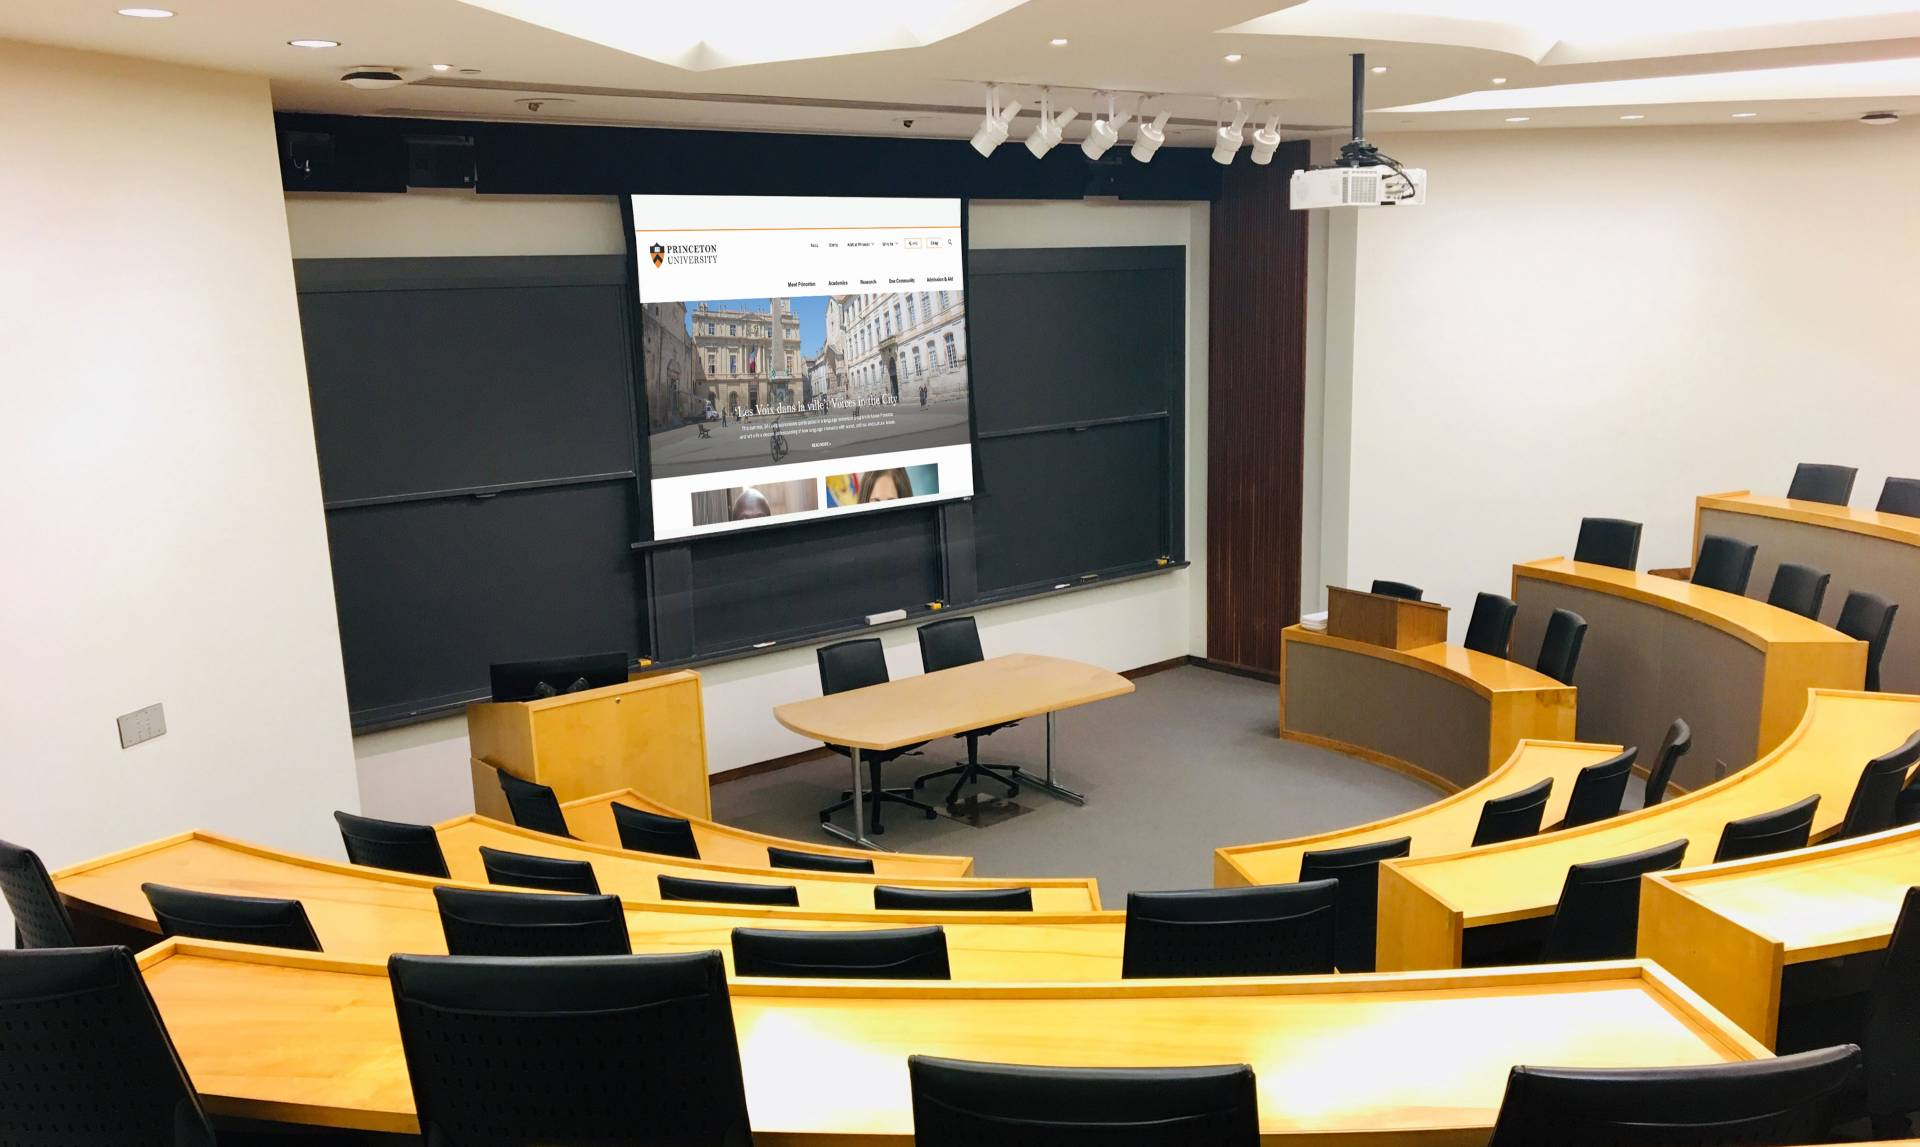 Large empty classroom with projector screen